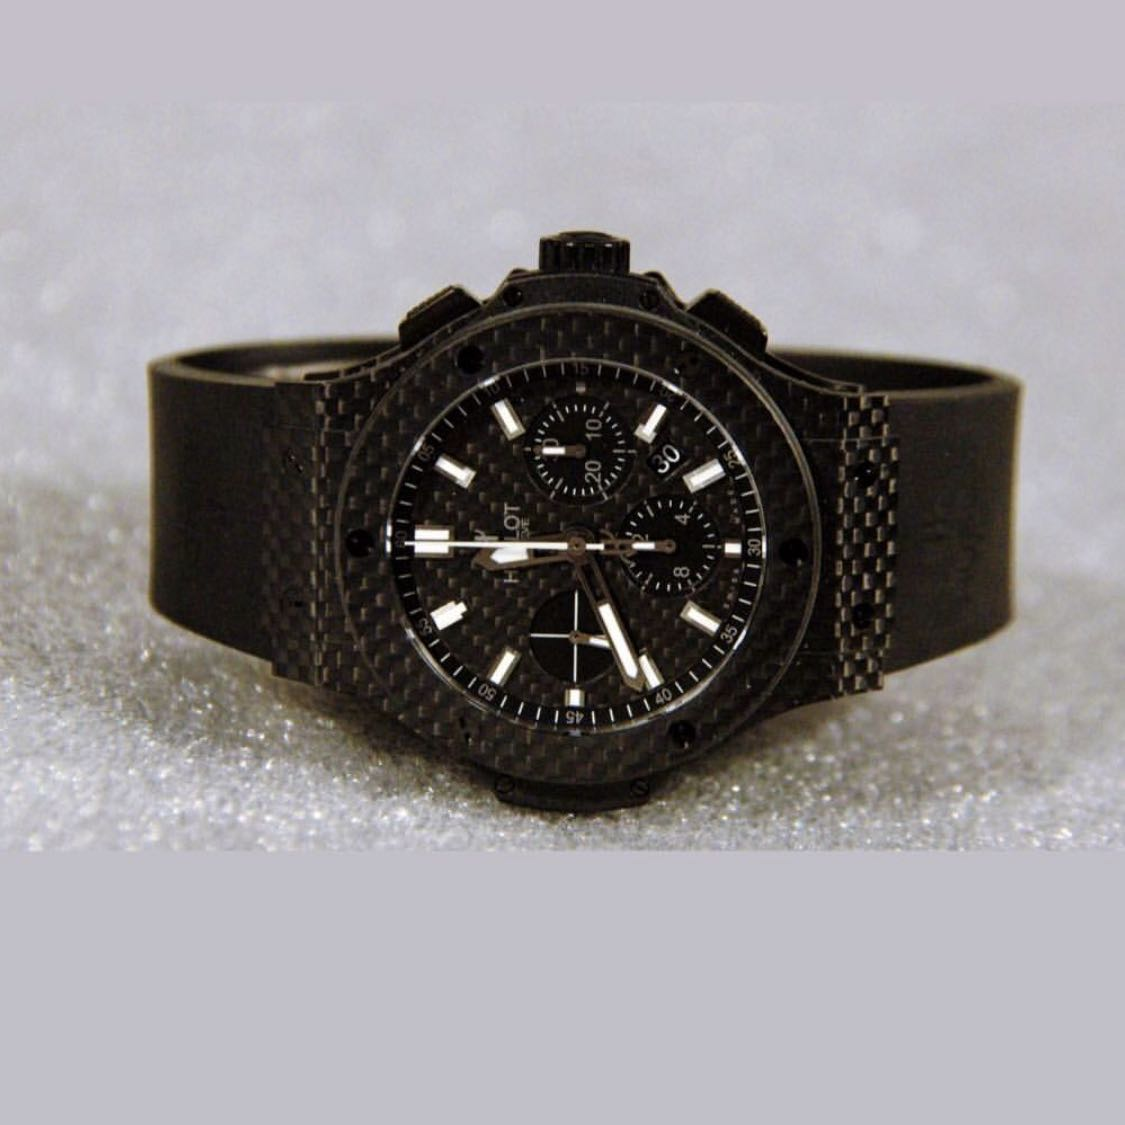 Hublot-Big-Bang-full-Carbon-Swiss-half-price-without-box-papers-just-the-watch - יד 2